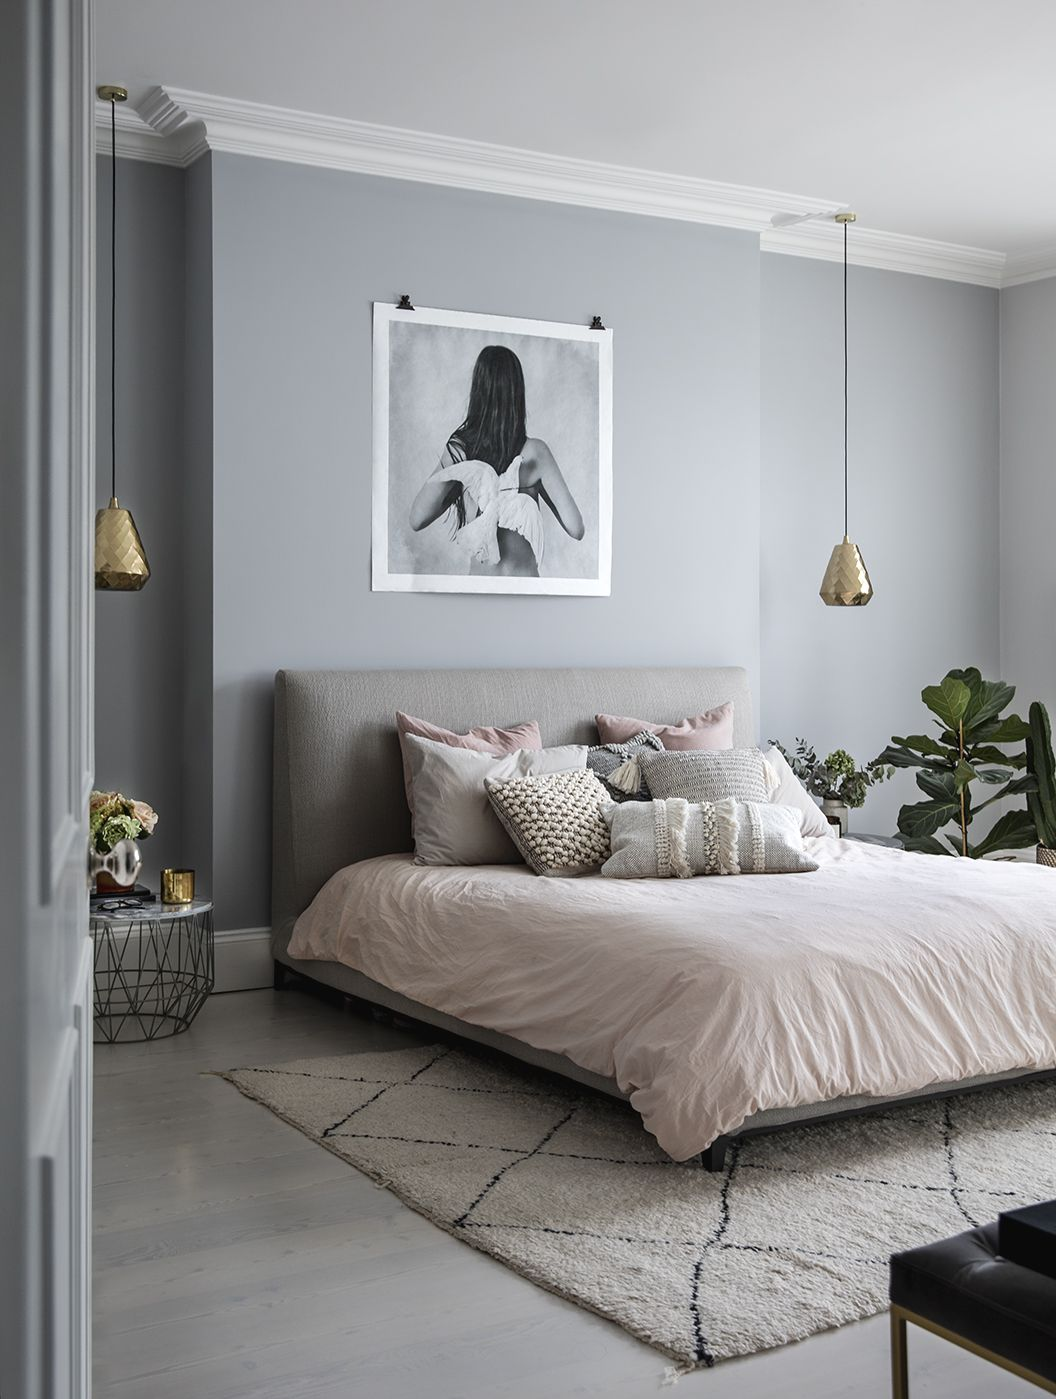 Bedroom designed by Sommer Pyne founder of House Curious. Photography by Rei Moon. Rug, lighting and cushions all available at housecurious.co.uk